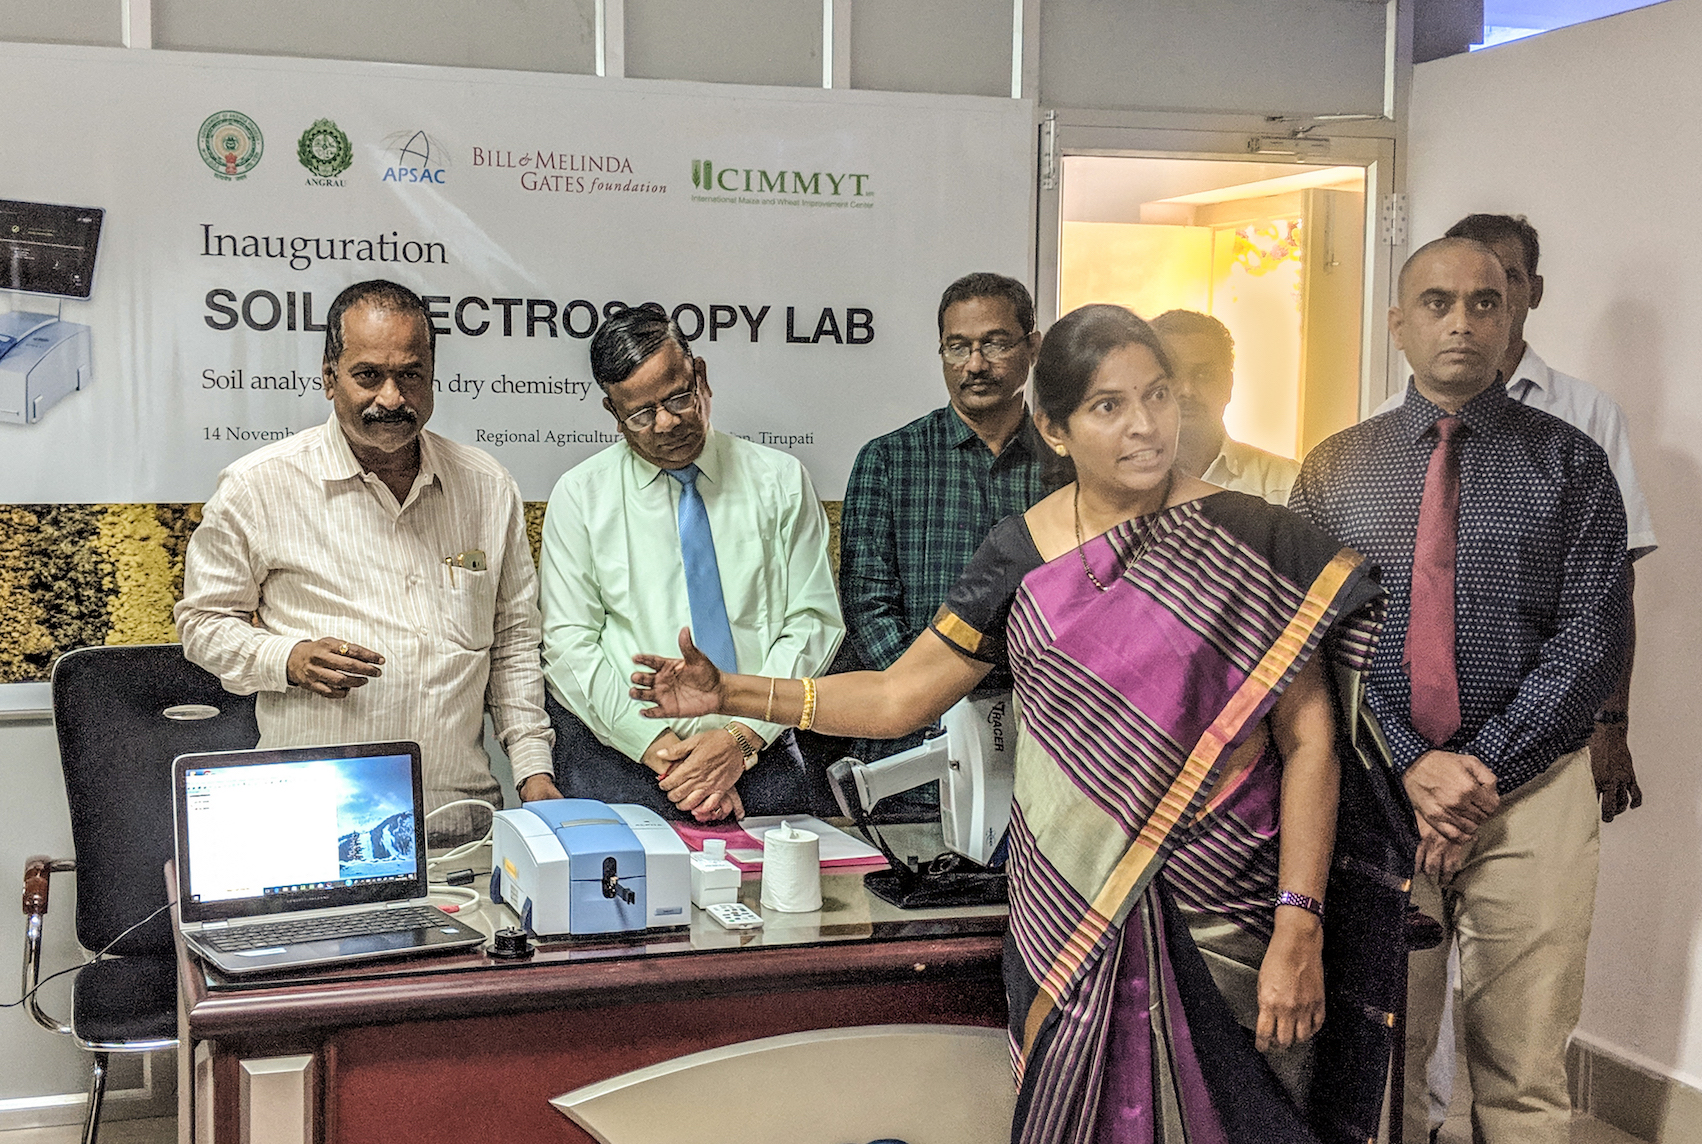 K.V. Naga Madhuri, Principal Scientist for Soil Science at Acharya N. G. Ranga Agricultural University (front), explains soil spectra during the opening of the soil spectroscopy lab at the Regional Agricultural Research Station in Tirupati, Andhra Pradesh.